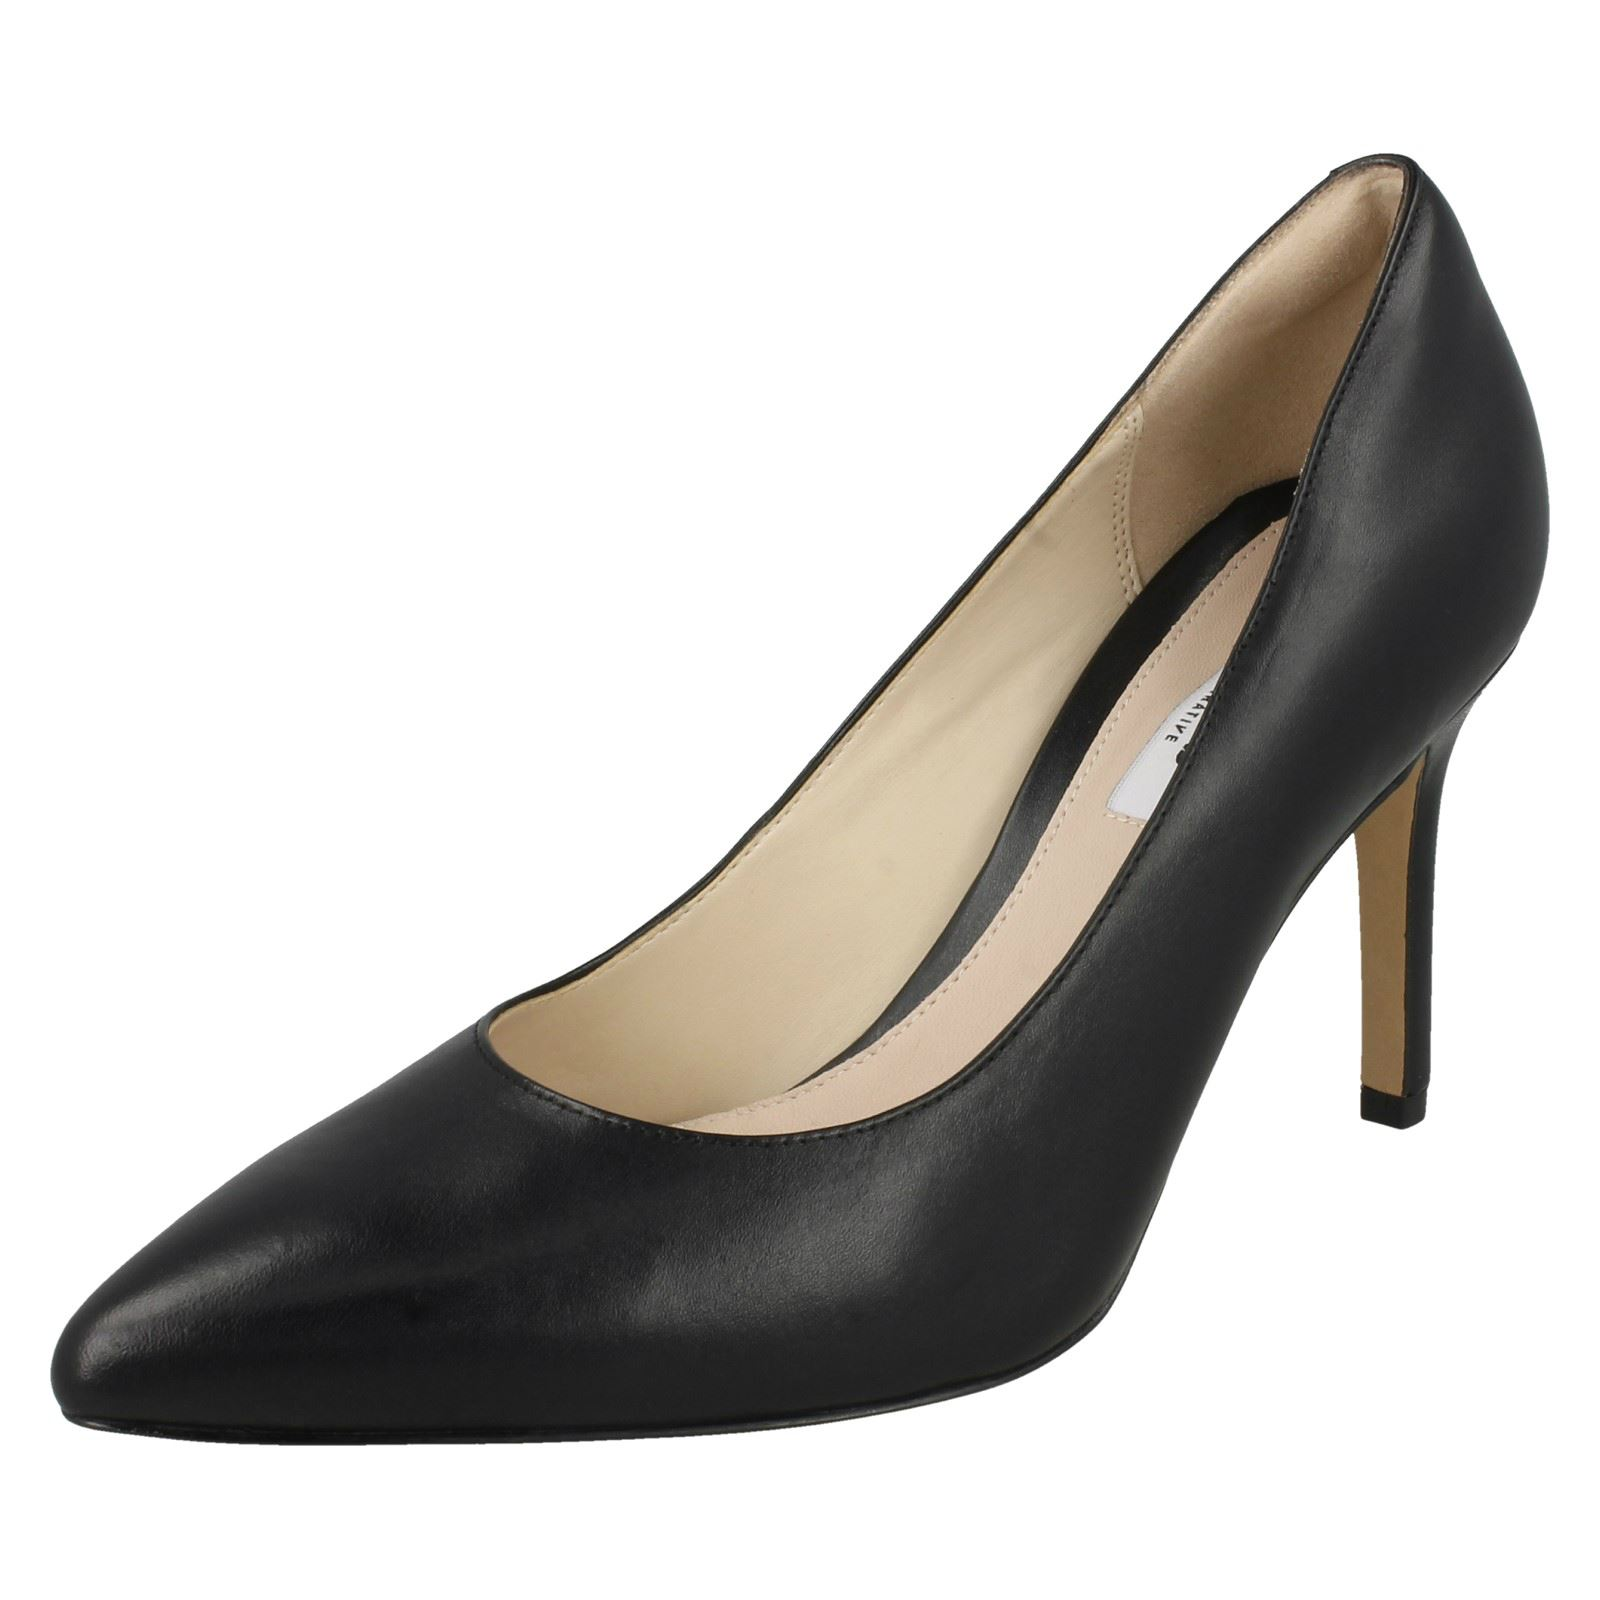 bb30fe3f868d Ladies Clarks High Heel Occasion Shoes Dinah Keer 8uk Black Leather D.  About this product. Picture 1 of 10  Picture 2 of 10 ...